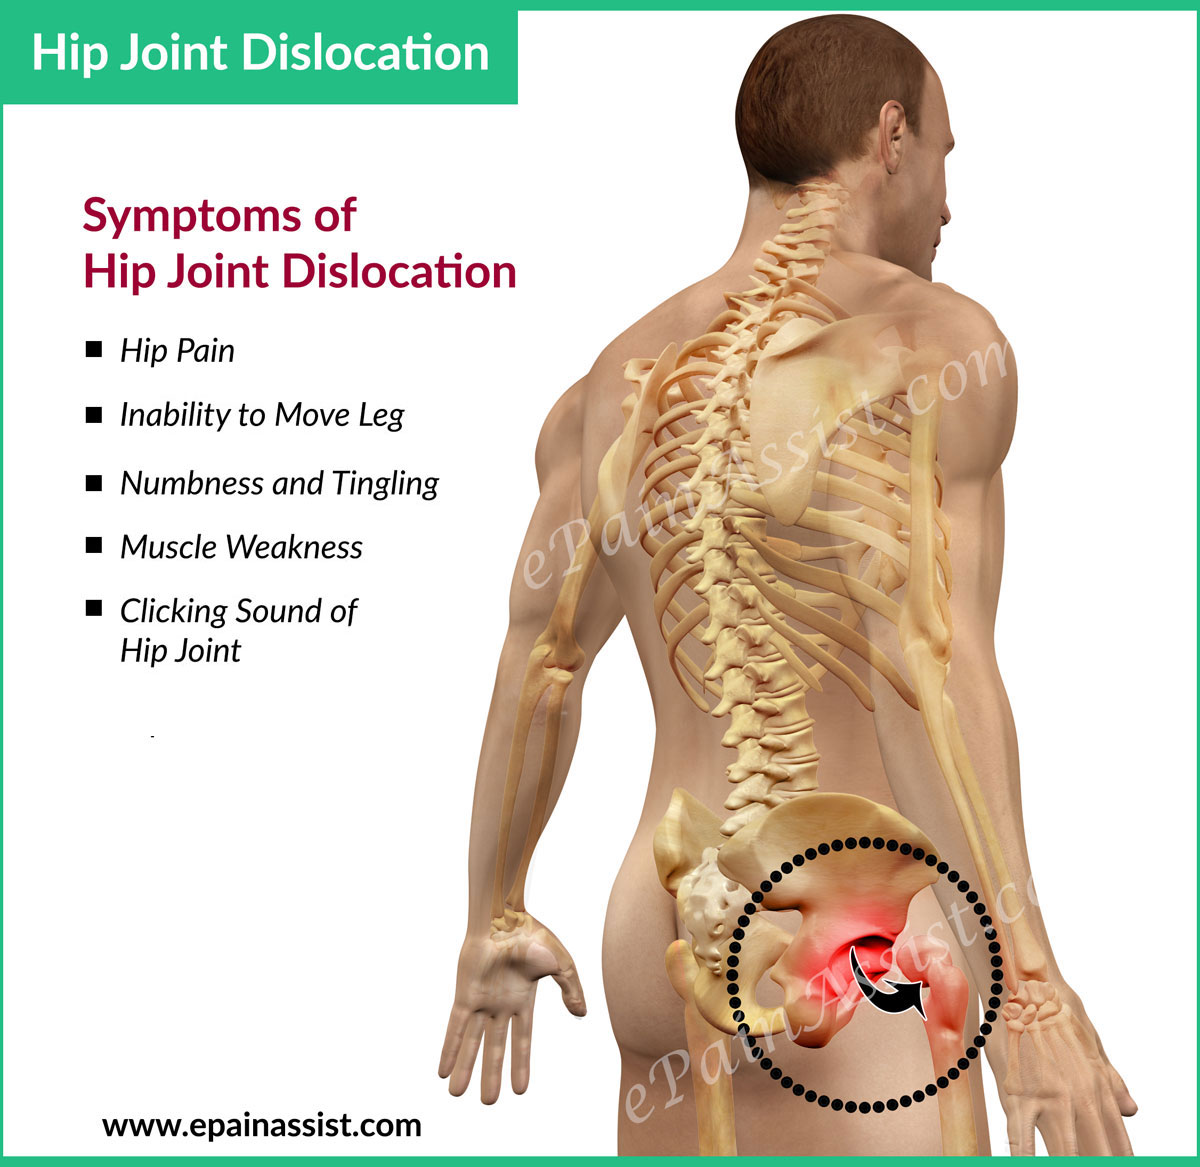 What is Hip Dislocation?|Types, Treatment, Exercises for Hip Dislocation